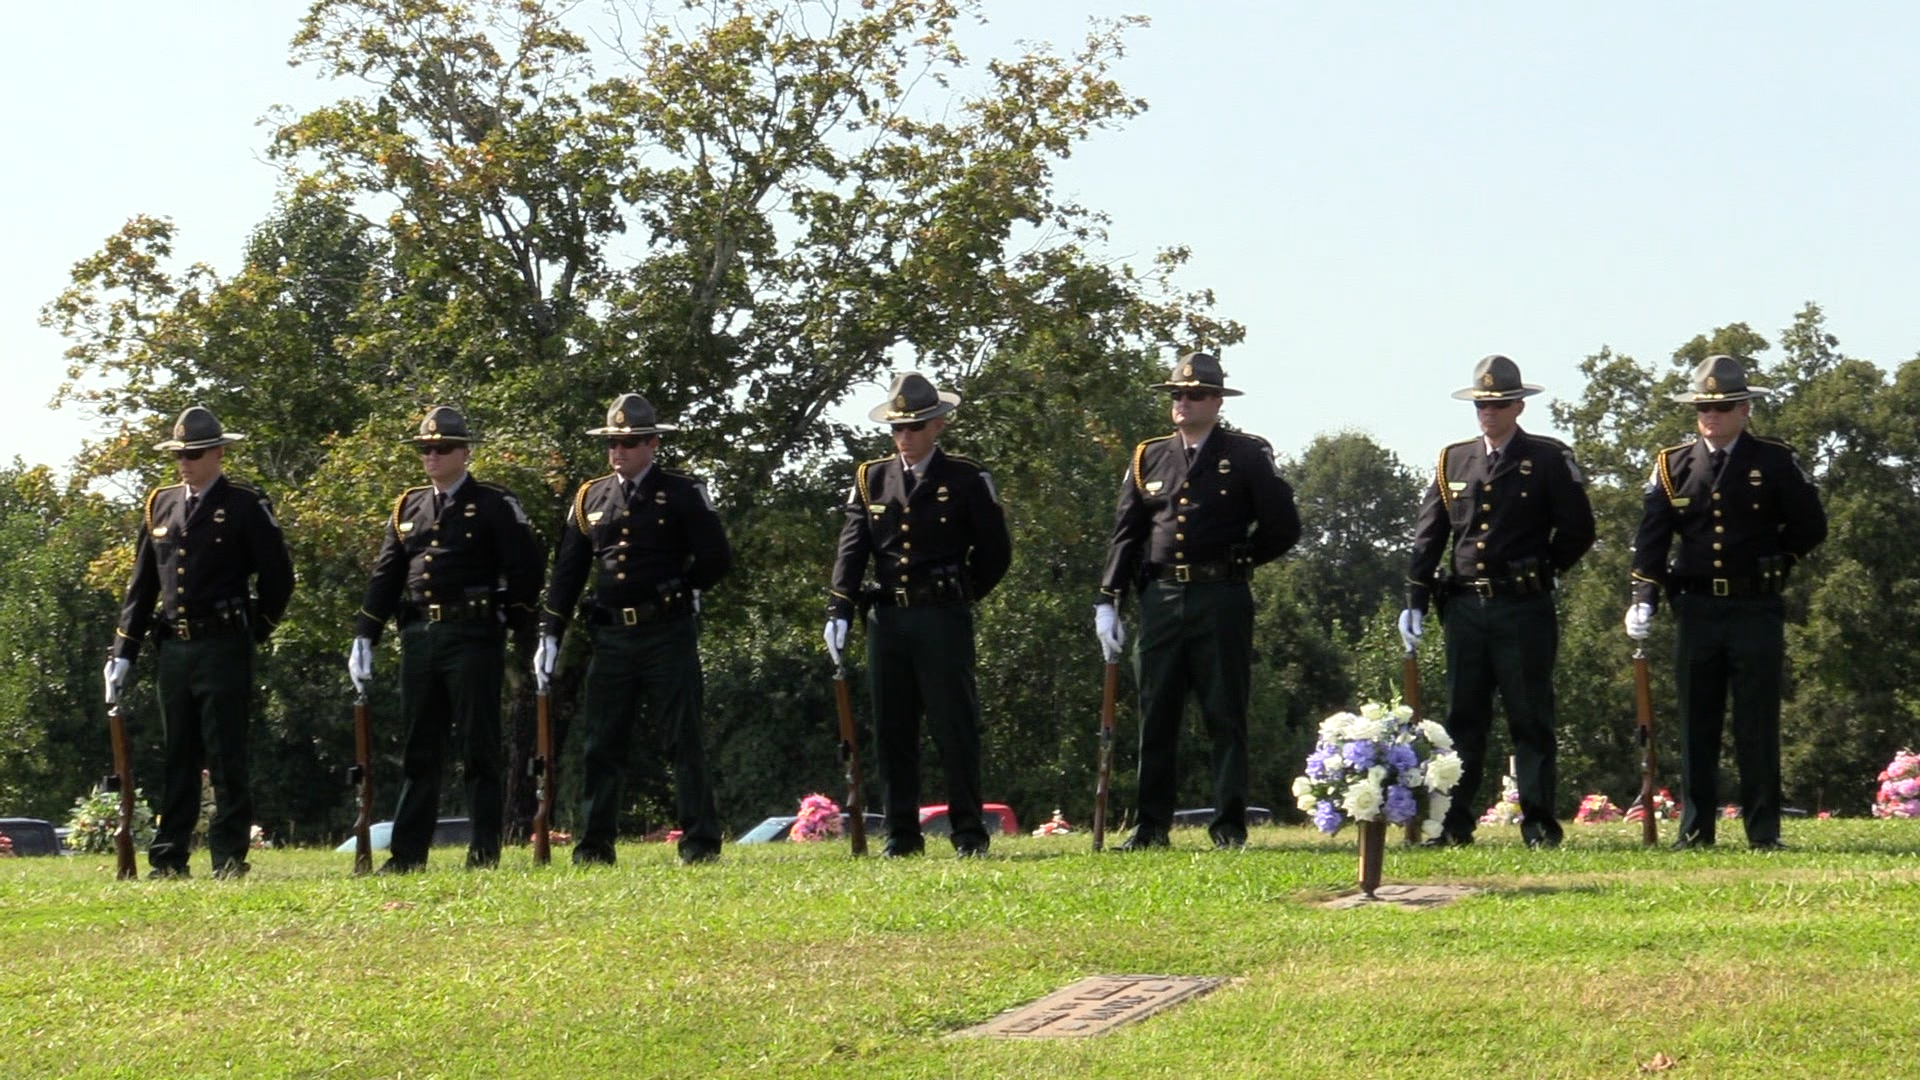 Honor Guard at a graveside service.